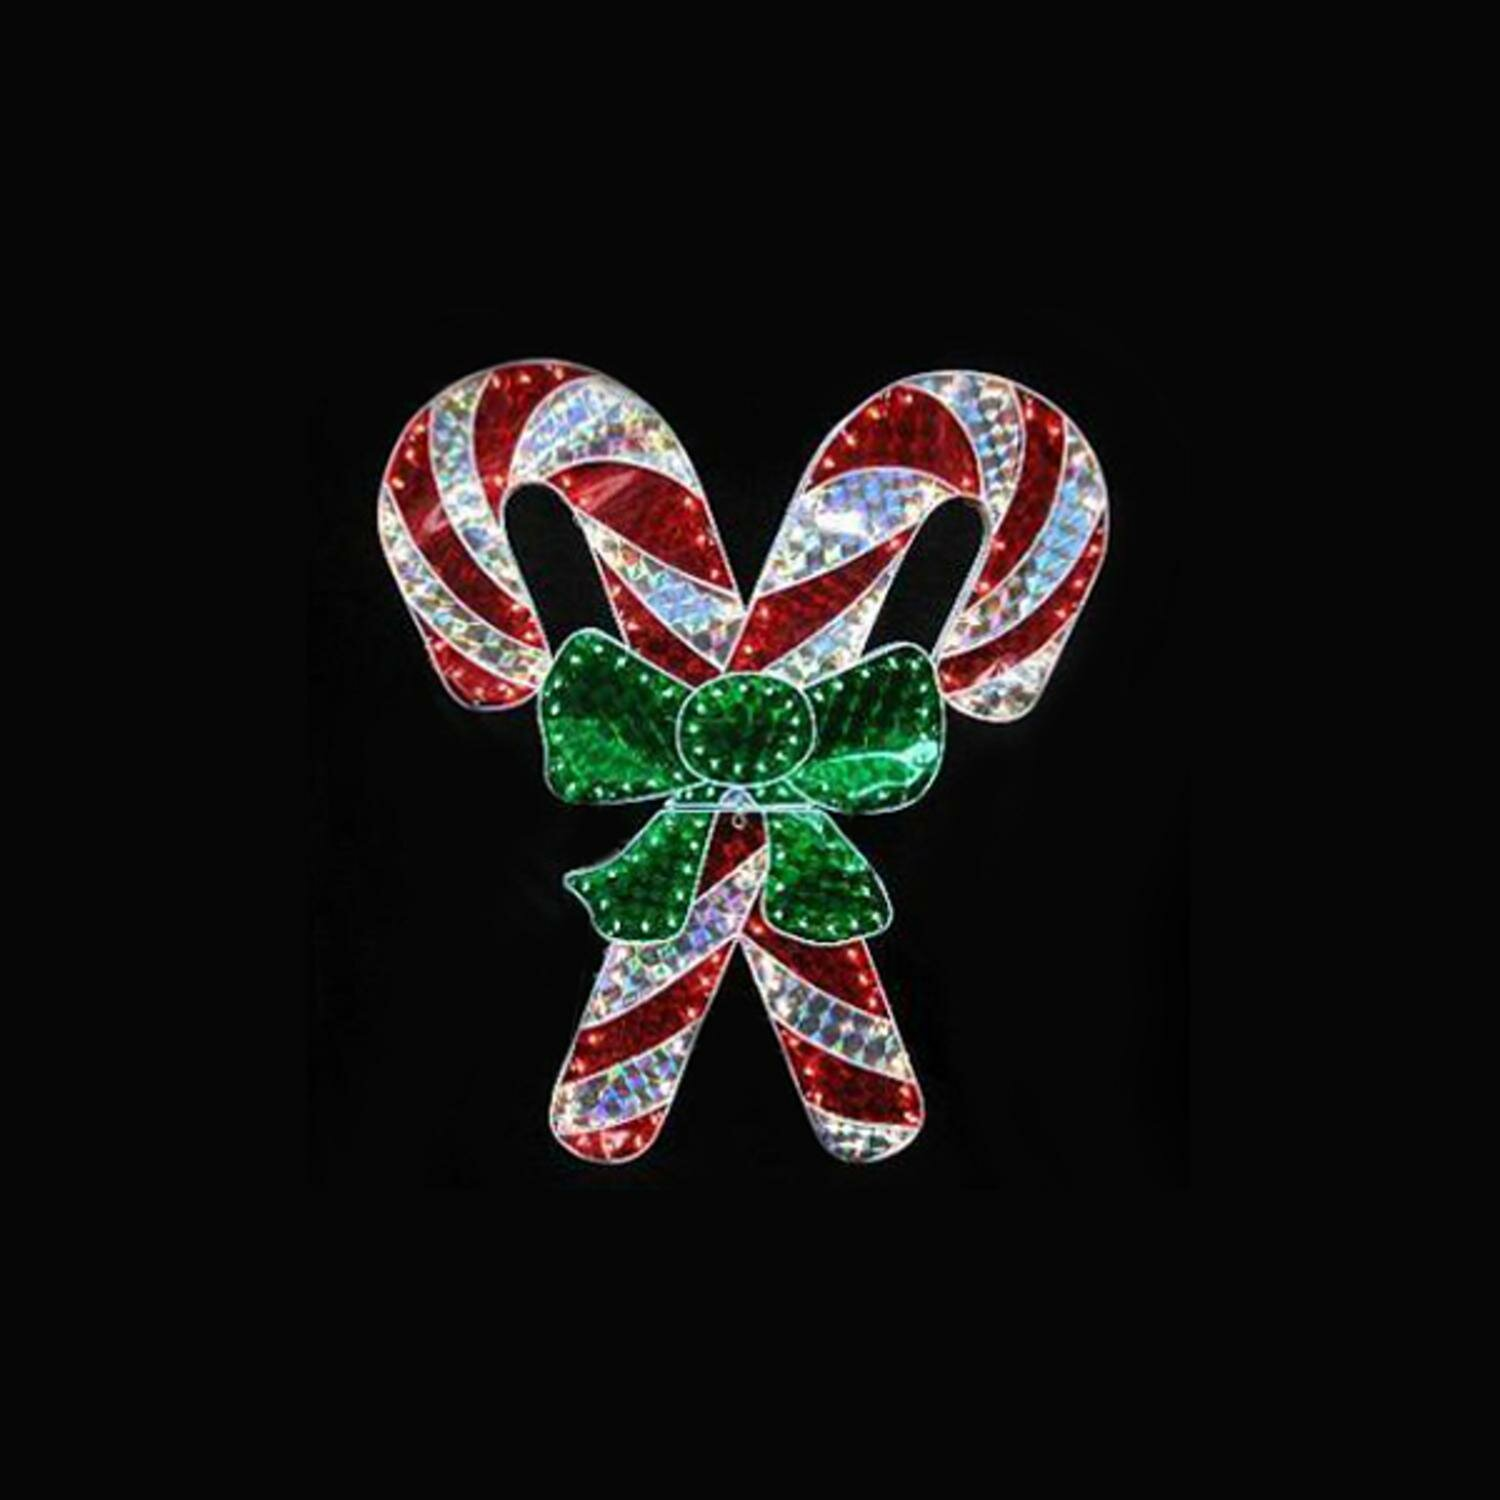 The Holiday Aisle Holographic Double Candy Cane Christmas Lighting